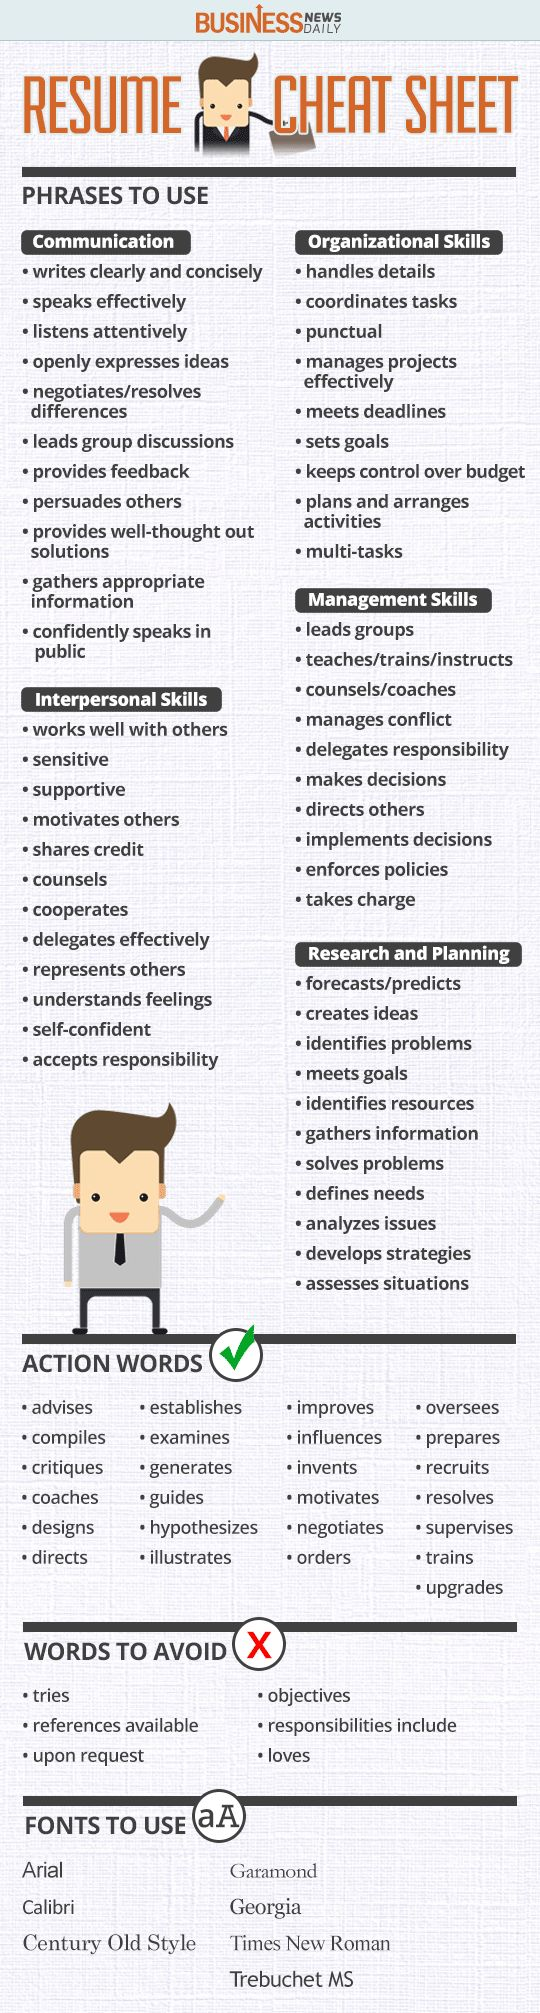 Opposenewapstandardsus  Pleasant  Ideas About Resume On Pinterest  Cv Format Resume Cv And  With Great Resume Cheat Sheet Infographic Andrews Almost Done With A Complete Unit On Employment Which With Alluring Resume Clinic Also Free Resume Forms In Addition Millwright Resume And Paralegal Resume Samples As Well As Resume For Housekeeper Additionally Quick Resume Builder Free From Pinterestcom With Opposenewapstandardsus  Great  Ideas About Resume On Pinterest  Cv Format Resume Cv And  With Alluring Resume Cheat Sheet Infographic Andrews Almost Done With A Complete Unit On Employment Which And Pleasant Resume Clinic Also Free Resume Forms In Addition Millwright Resume From Pinterestcom